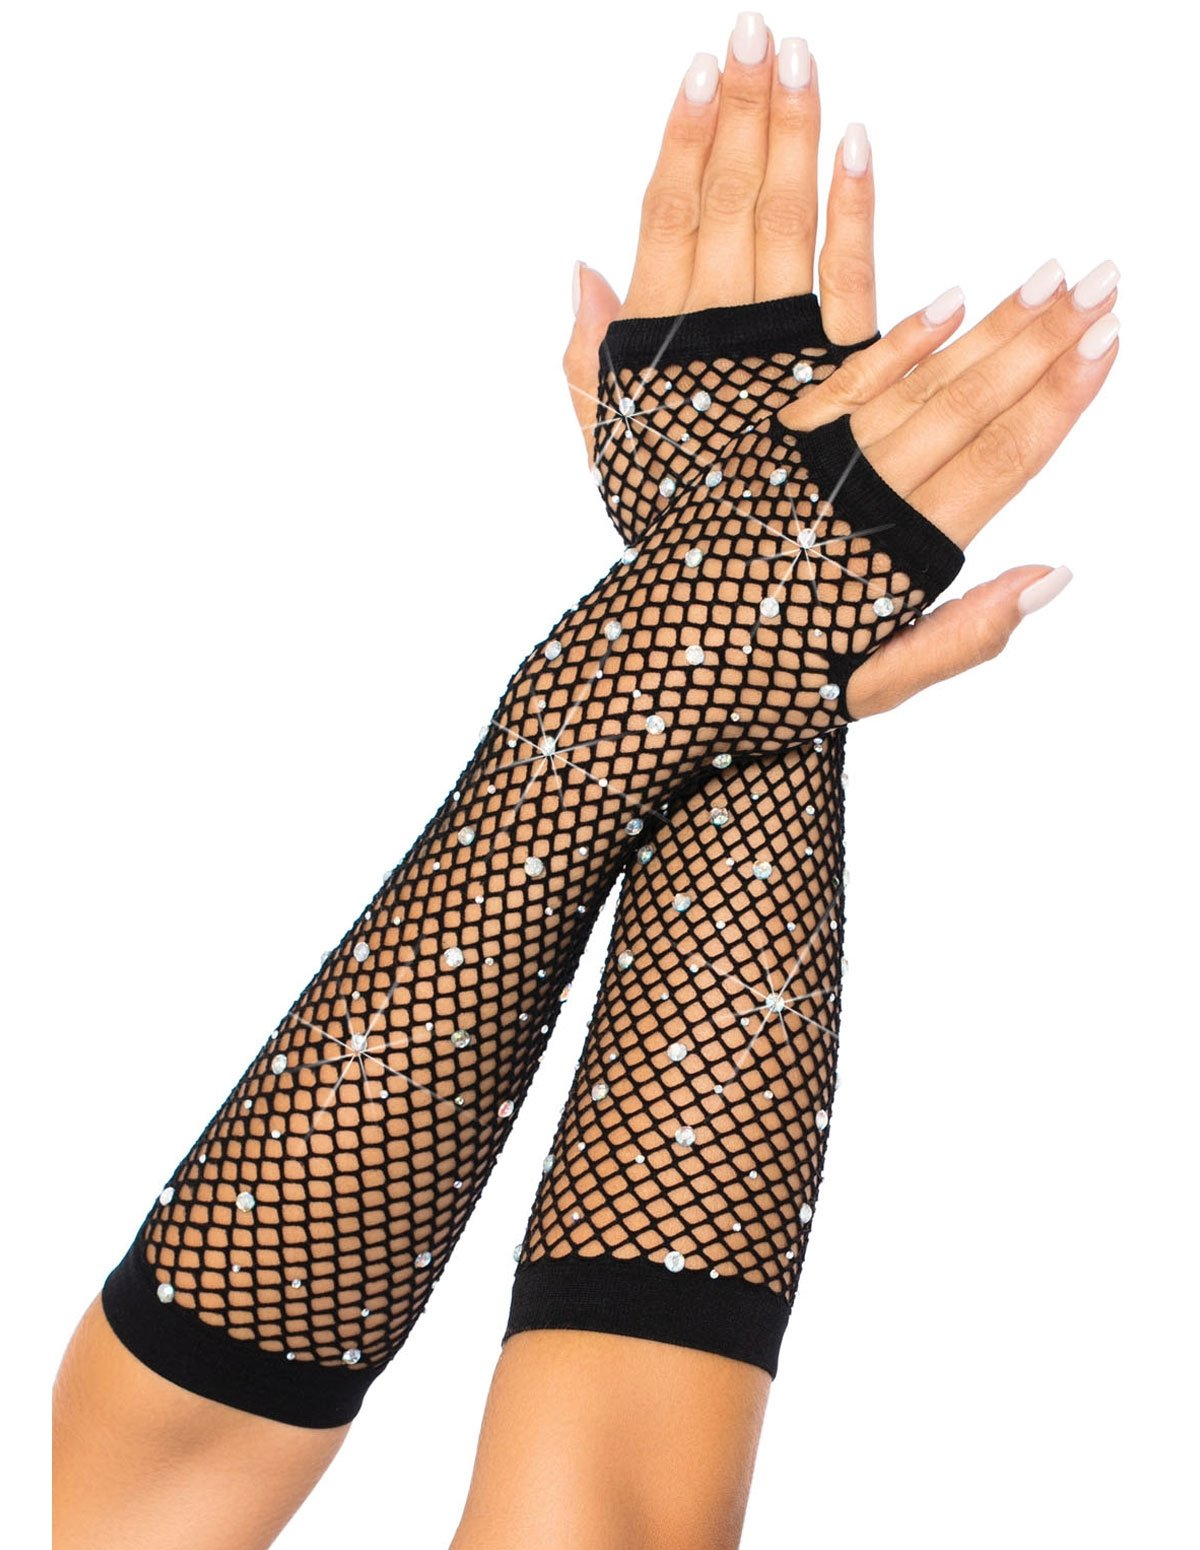 Rhinestone Fishnet Arm Warmers